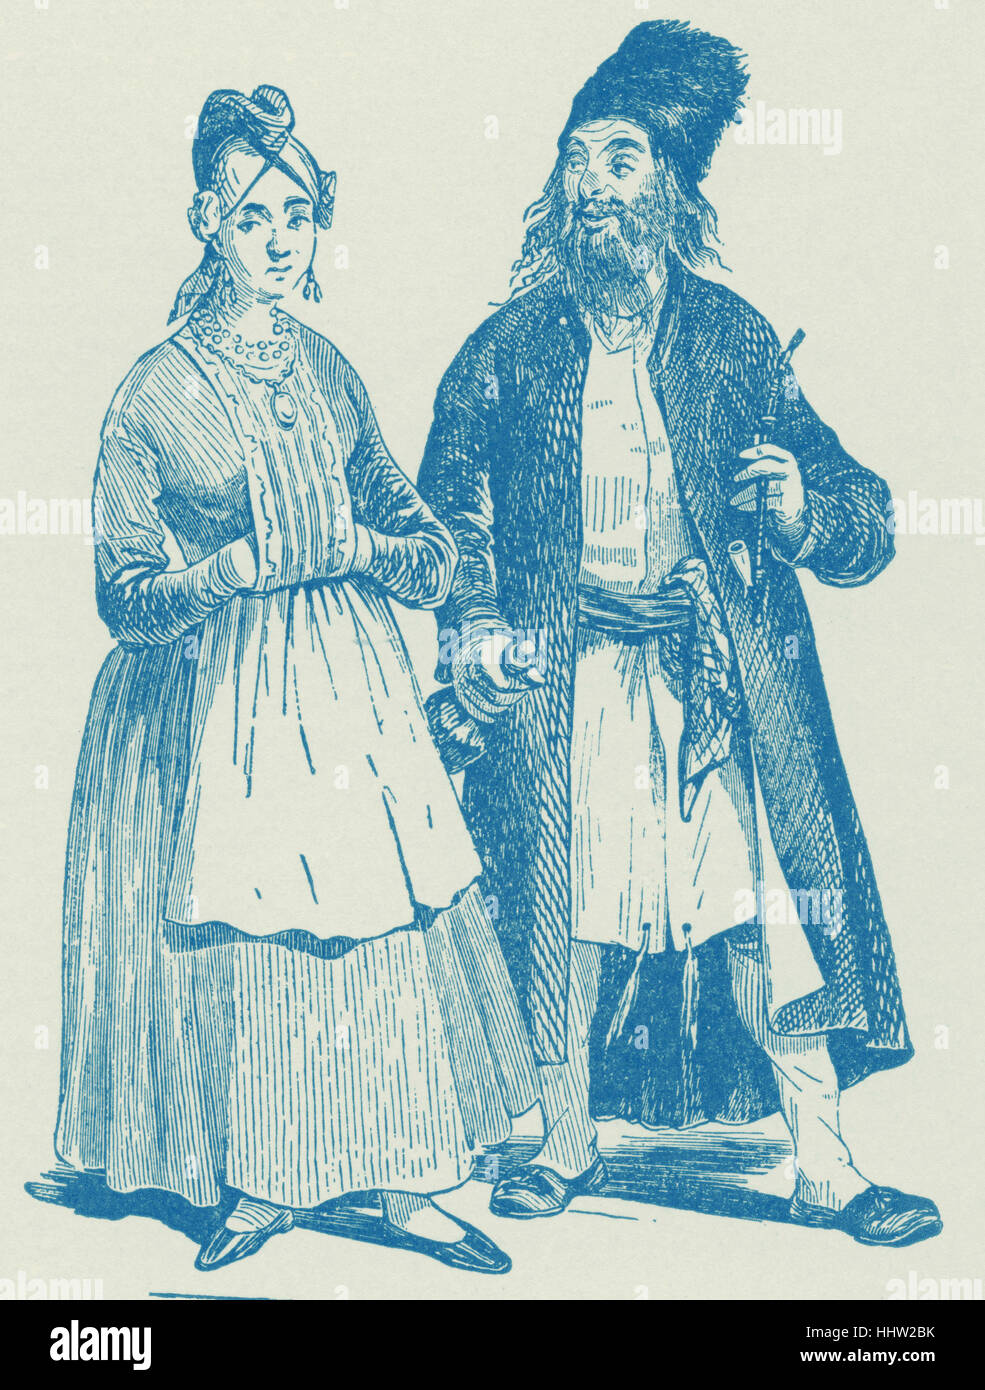 Hassid and Wife of the early nineteenth century, from Hollaenderski, 'Les Israelites de Pologne'. - Stock Image